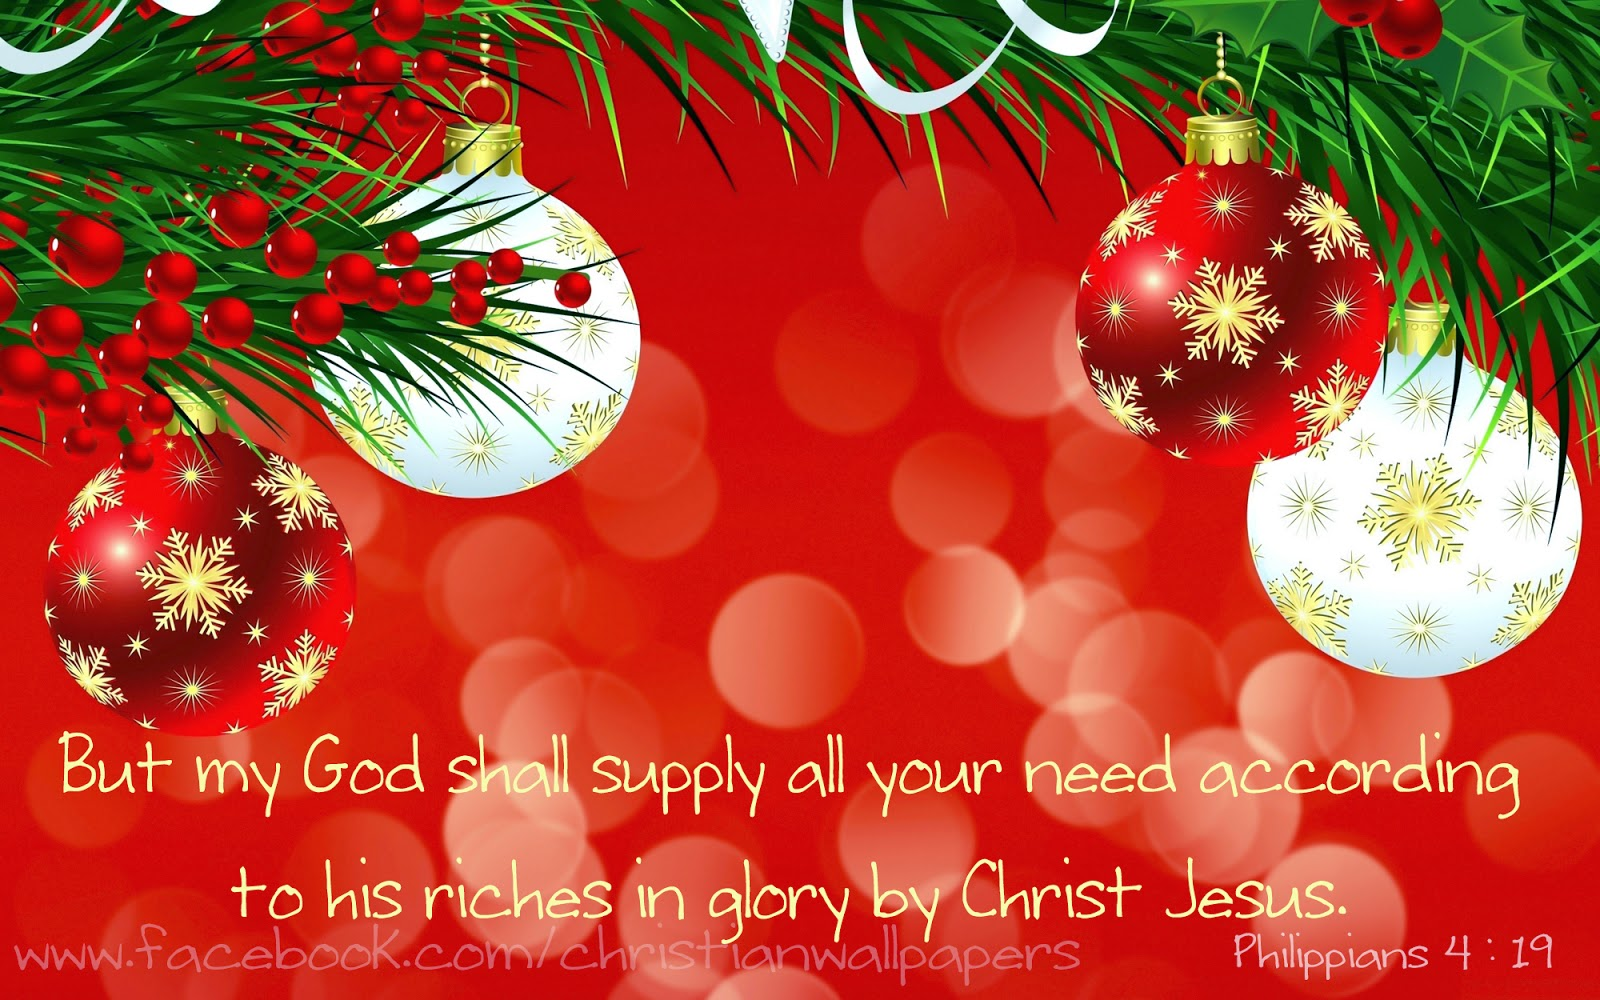 Download hd christmas new year 2018 bible verse greetings card christmas blessing bible verse card wallpaper m4hsunfo Choice Image